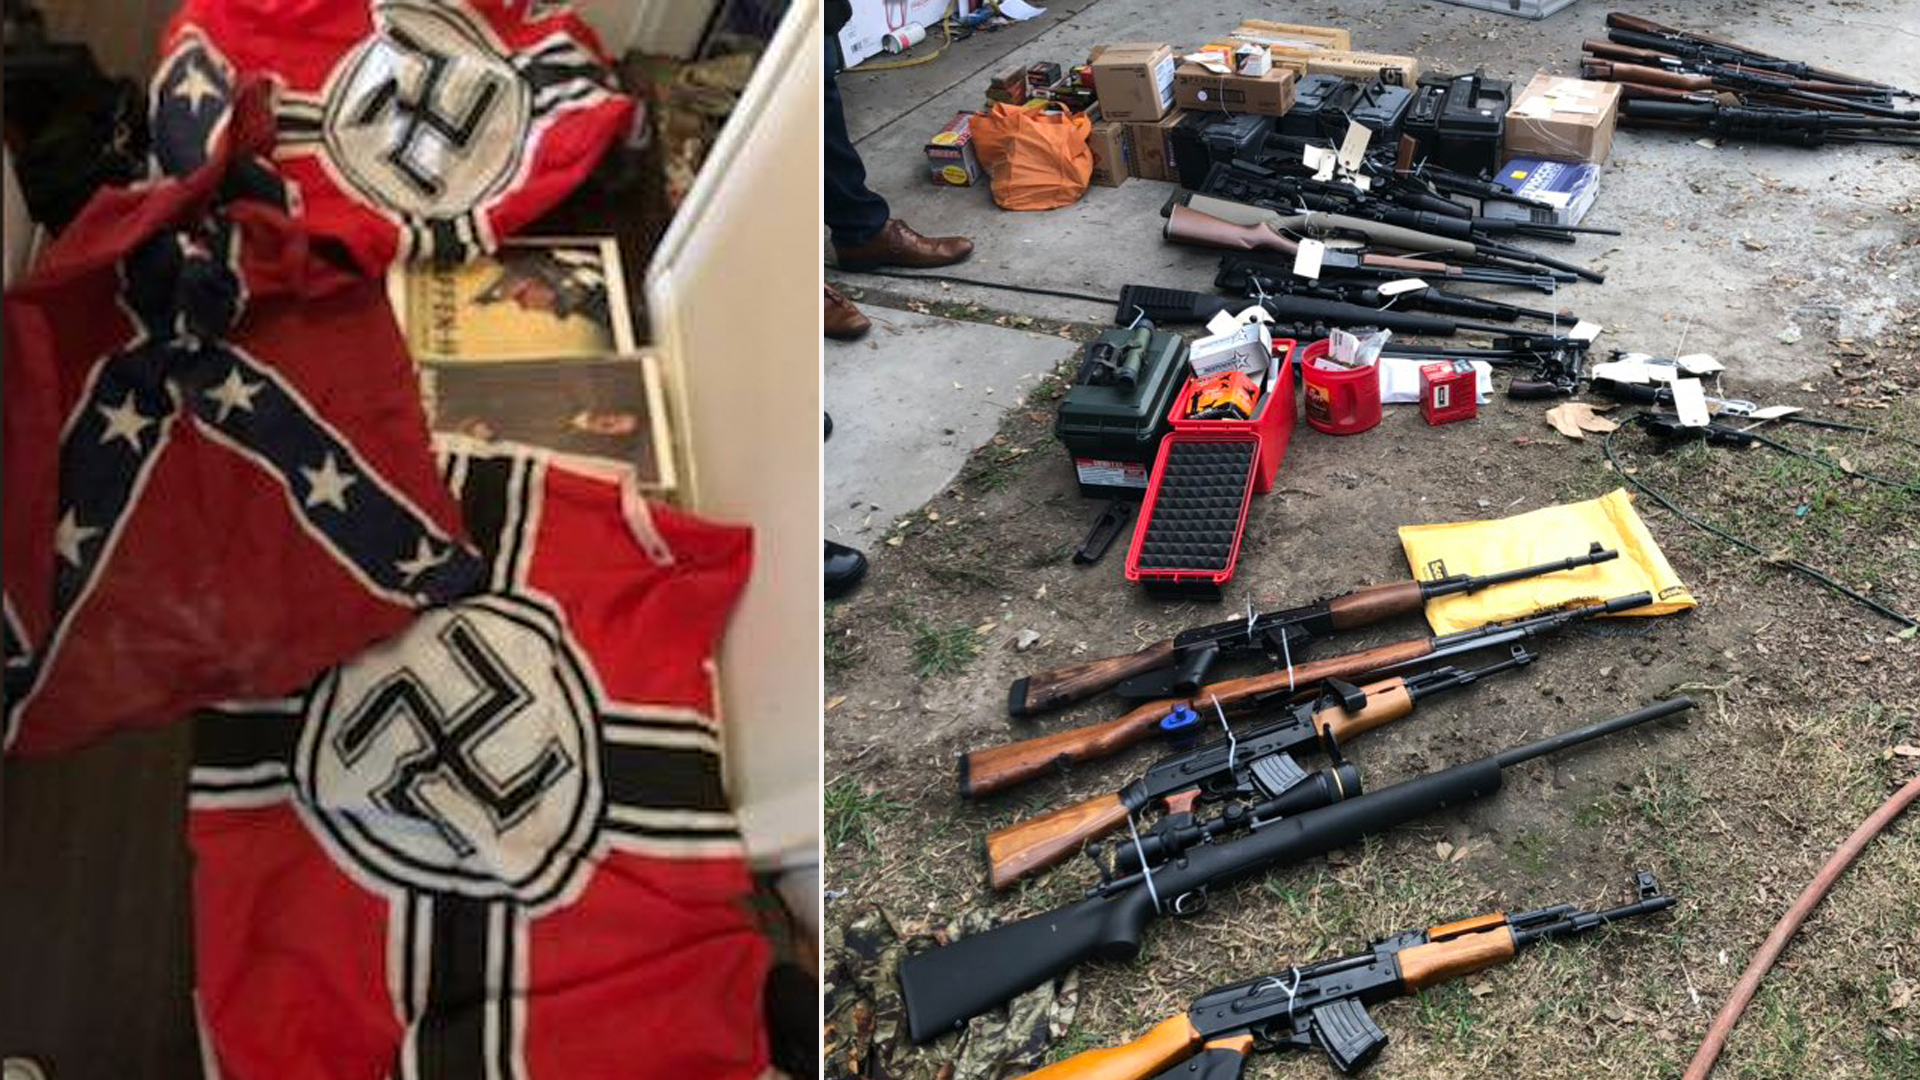 Images of items found in a Huntington Beach home were released by the Laguna Beach Police Department on Nov. 28, 2018.